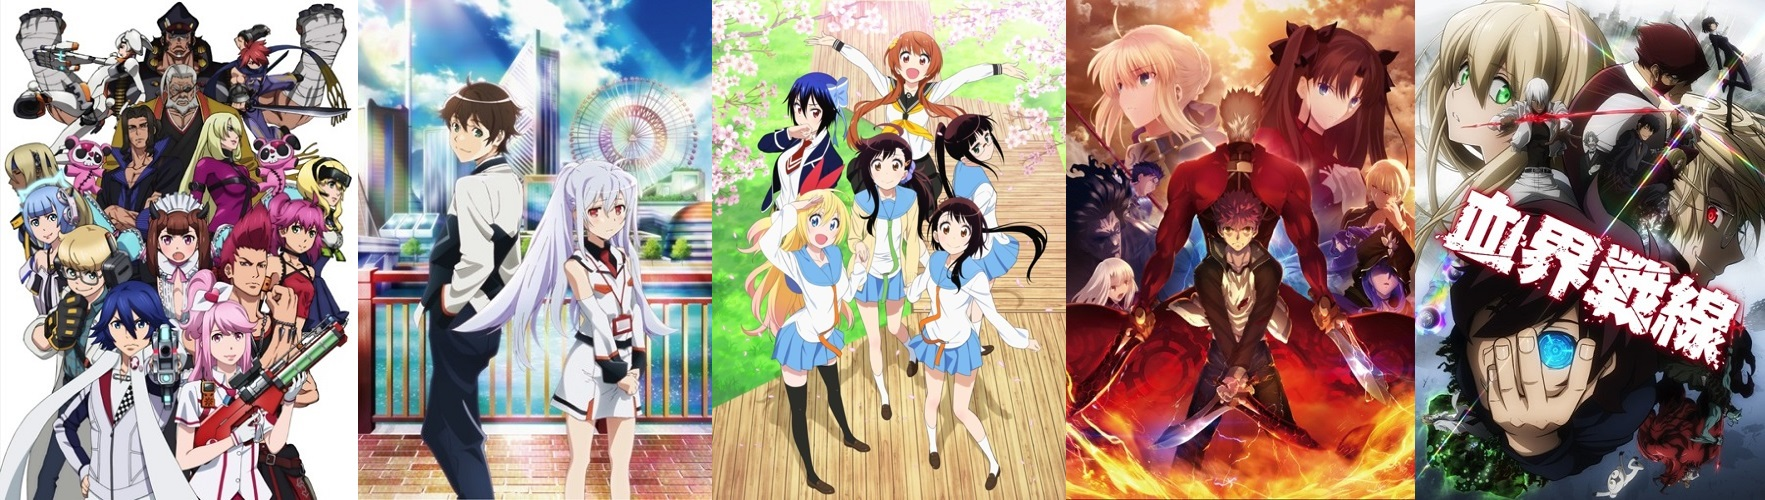 Anime Consortium Japan New Spring 2015 Line-Up and Anime Japan 2015 Official Report